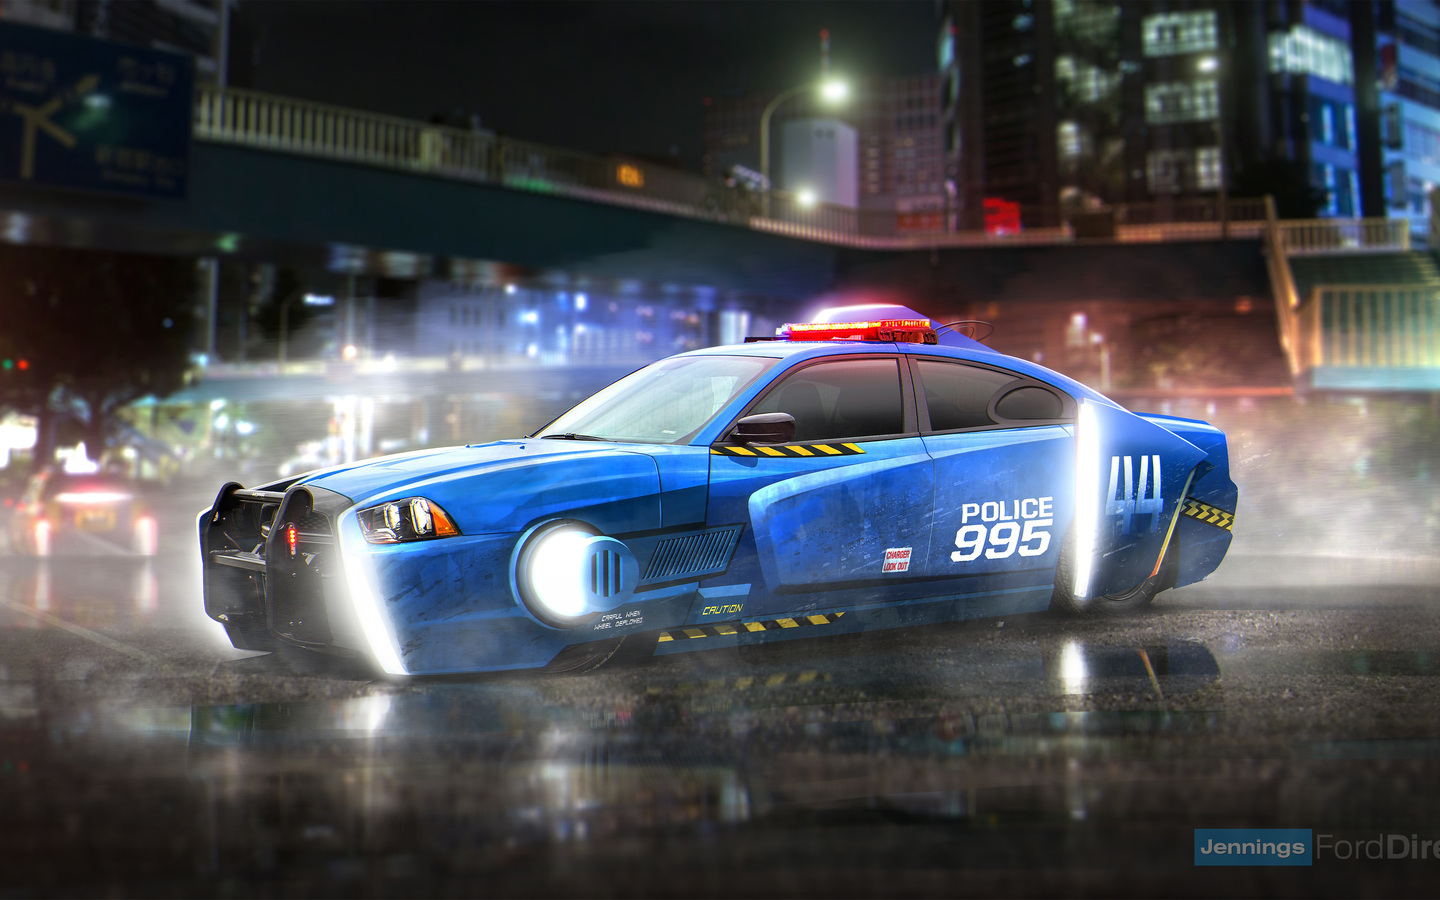 blade-runner-spinner-dodge-charger-police-car-21.jpg